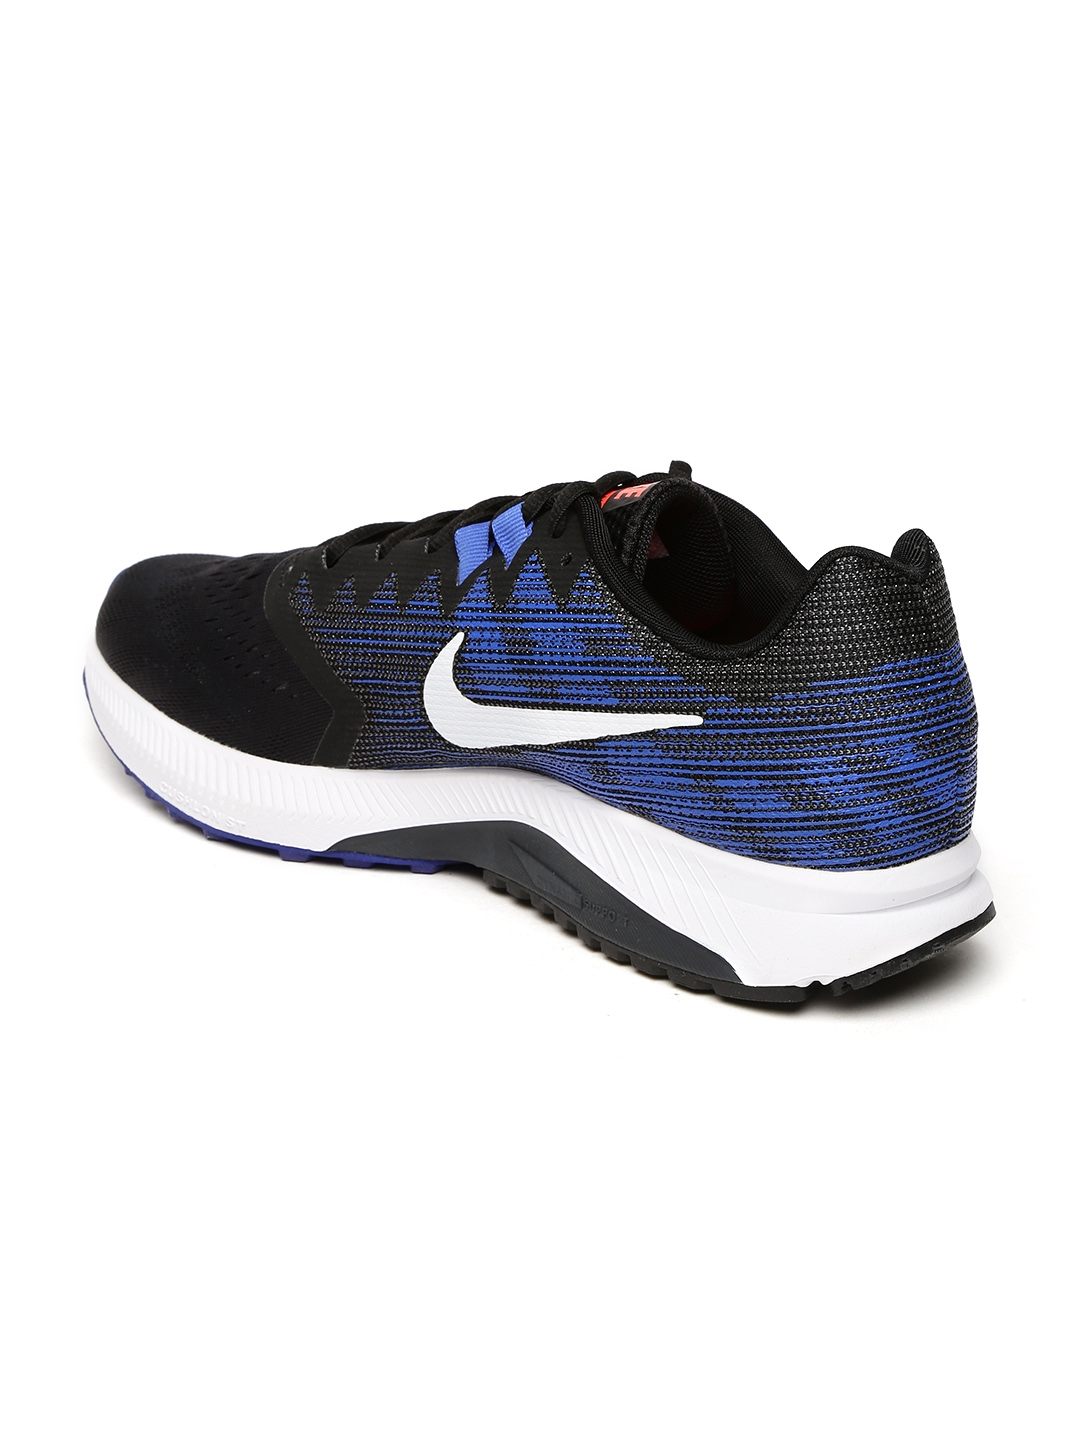 d3237d2df3084 Buy Nike Men Black   Blue ZOOM SPAN 2 Running Shoes - Sports Shoes ...